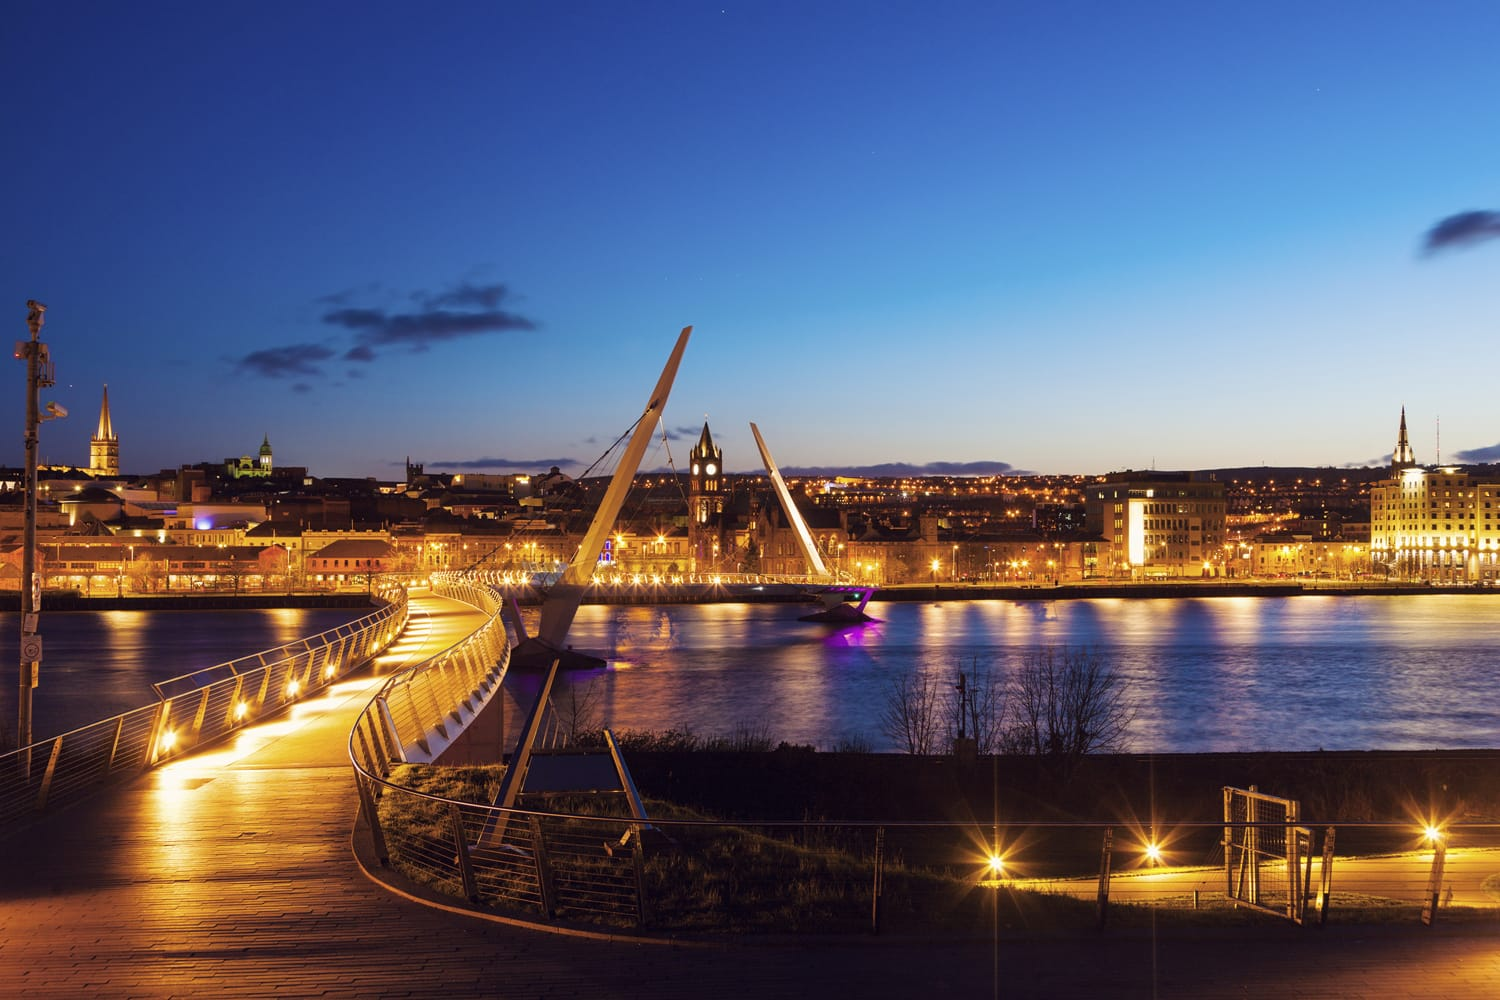 Peace Bridge in Derry. Derry, Northern Ireland, United Kingdom.